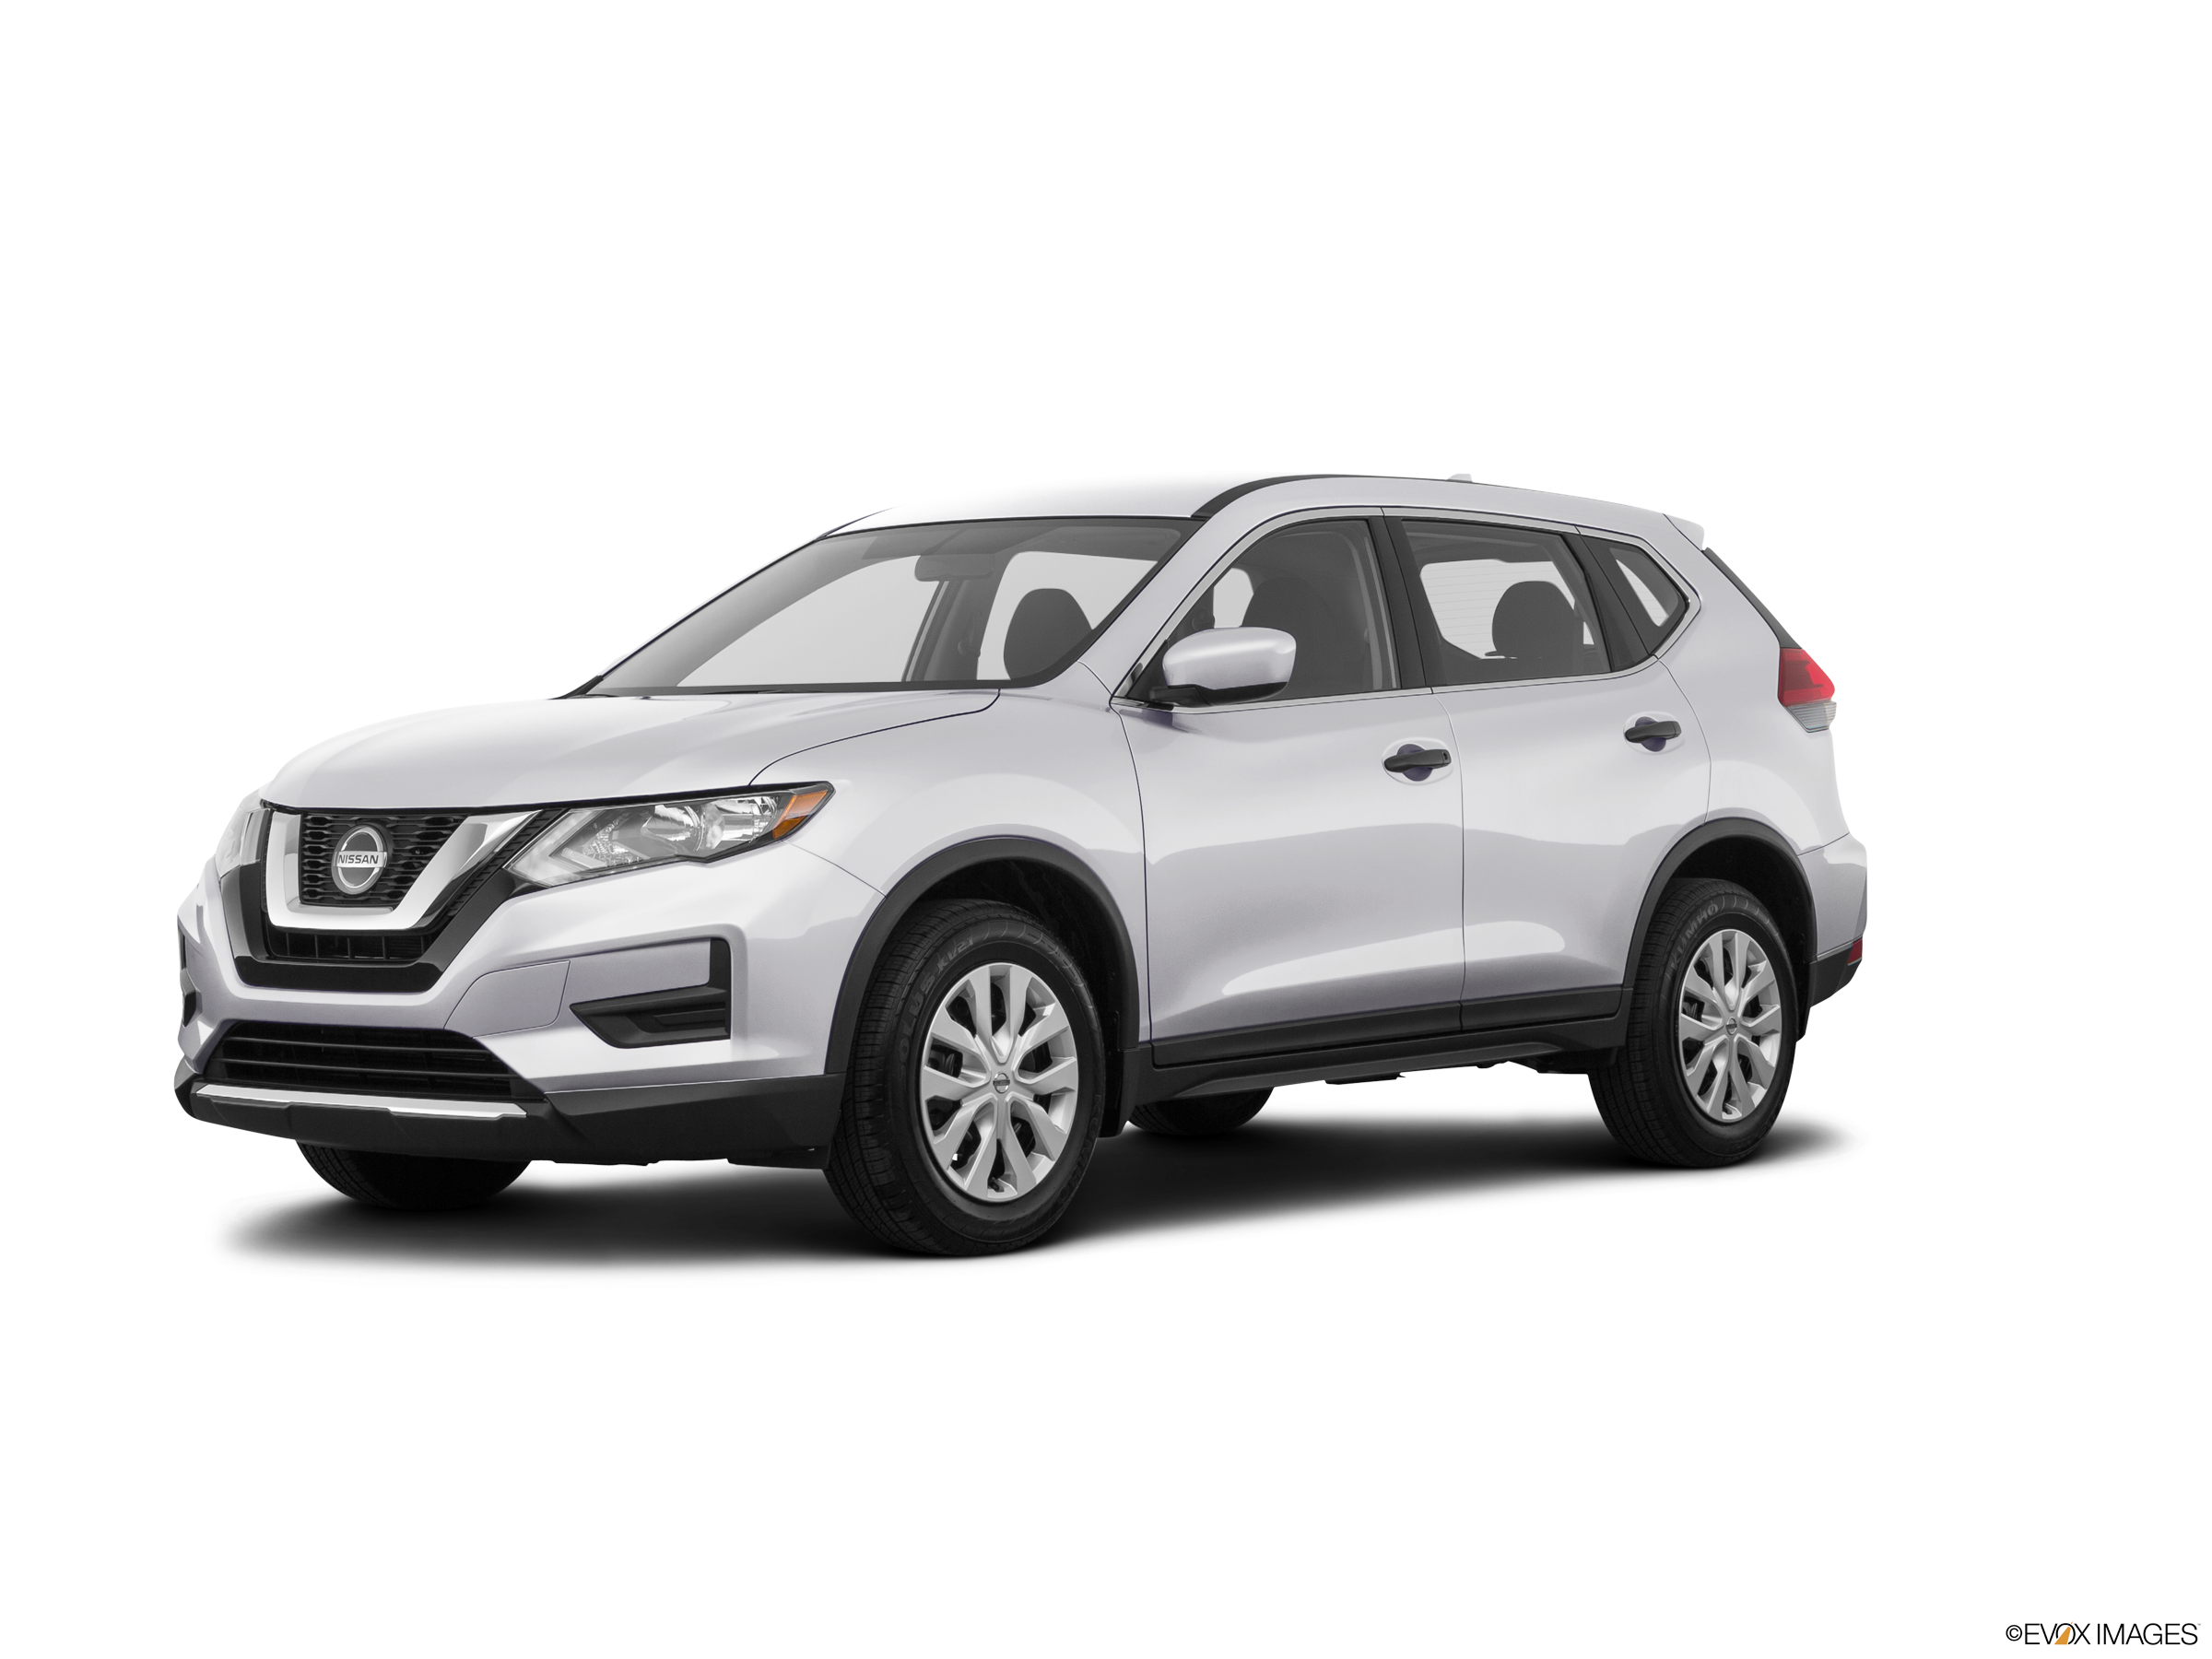 10 Best SUVs Under $25,000 - 2018 Nissan Rogue